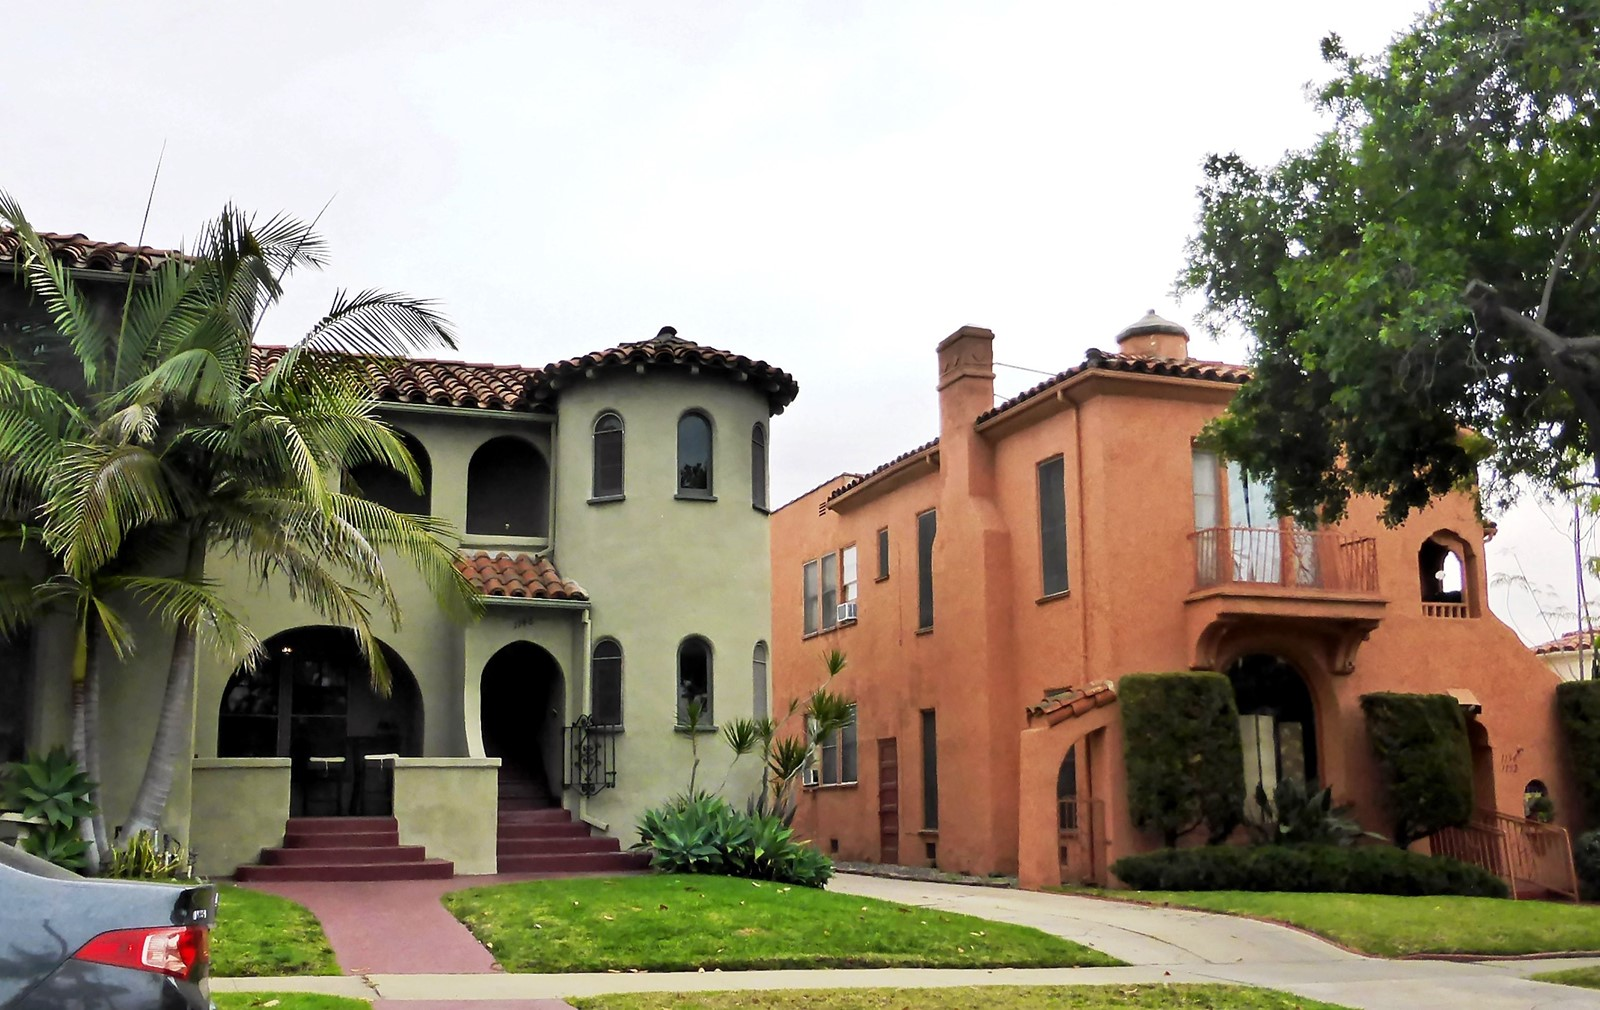 Typical Spanish Colonial Revival Architecture